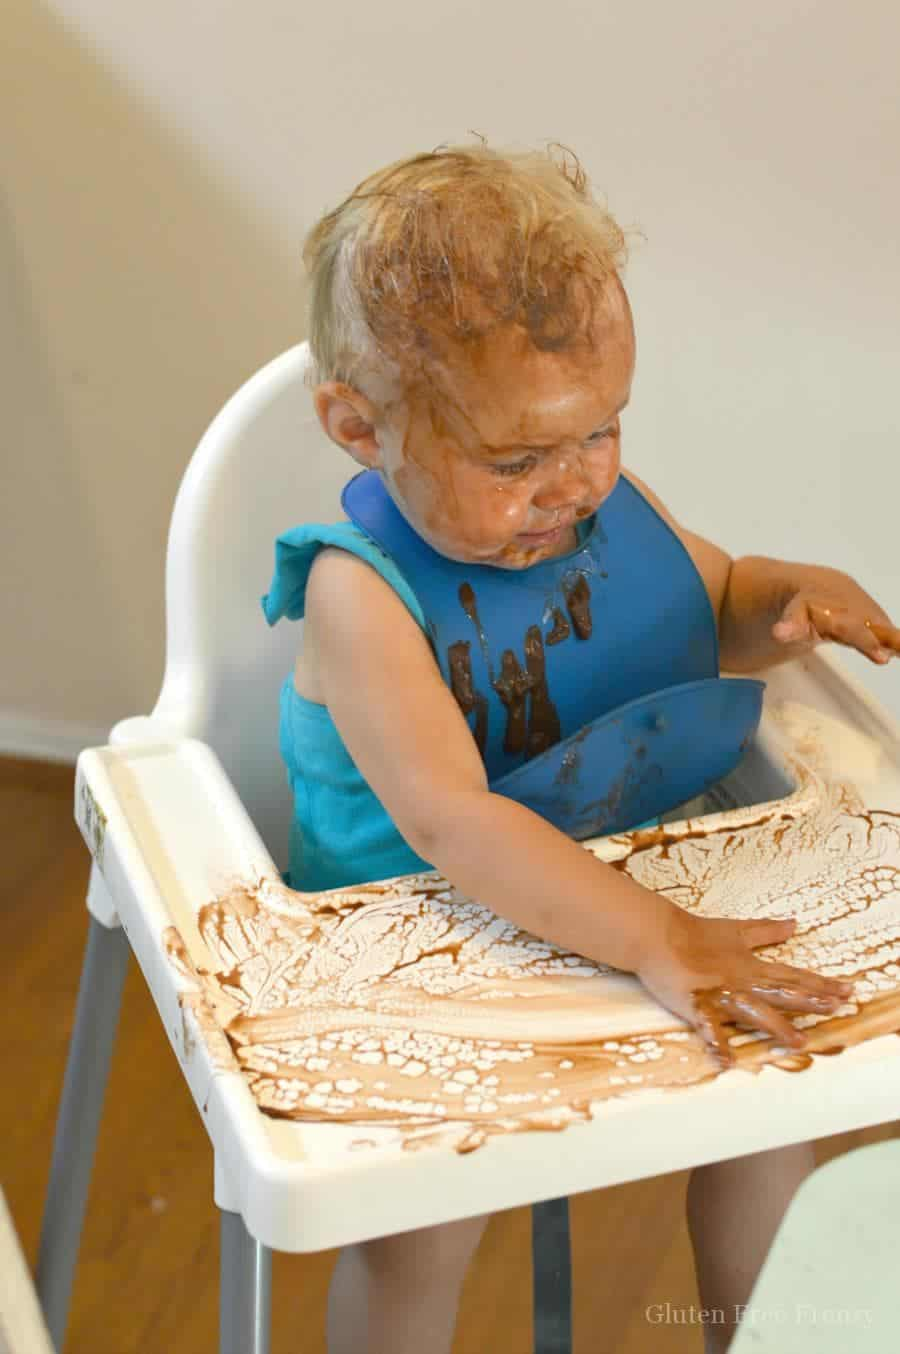 Homemade pudding and pudding painting fun